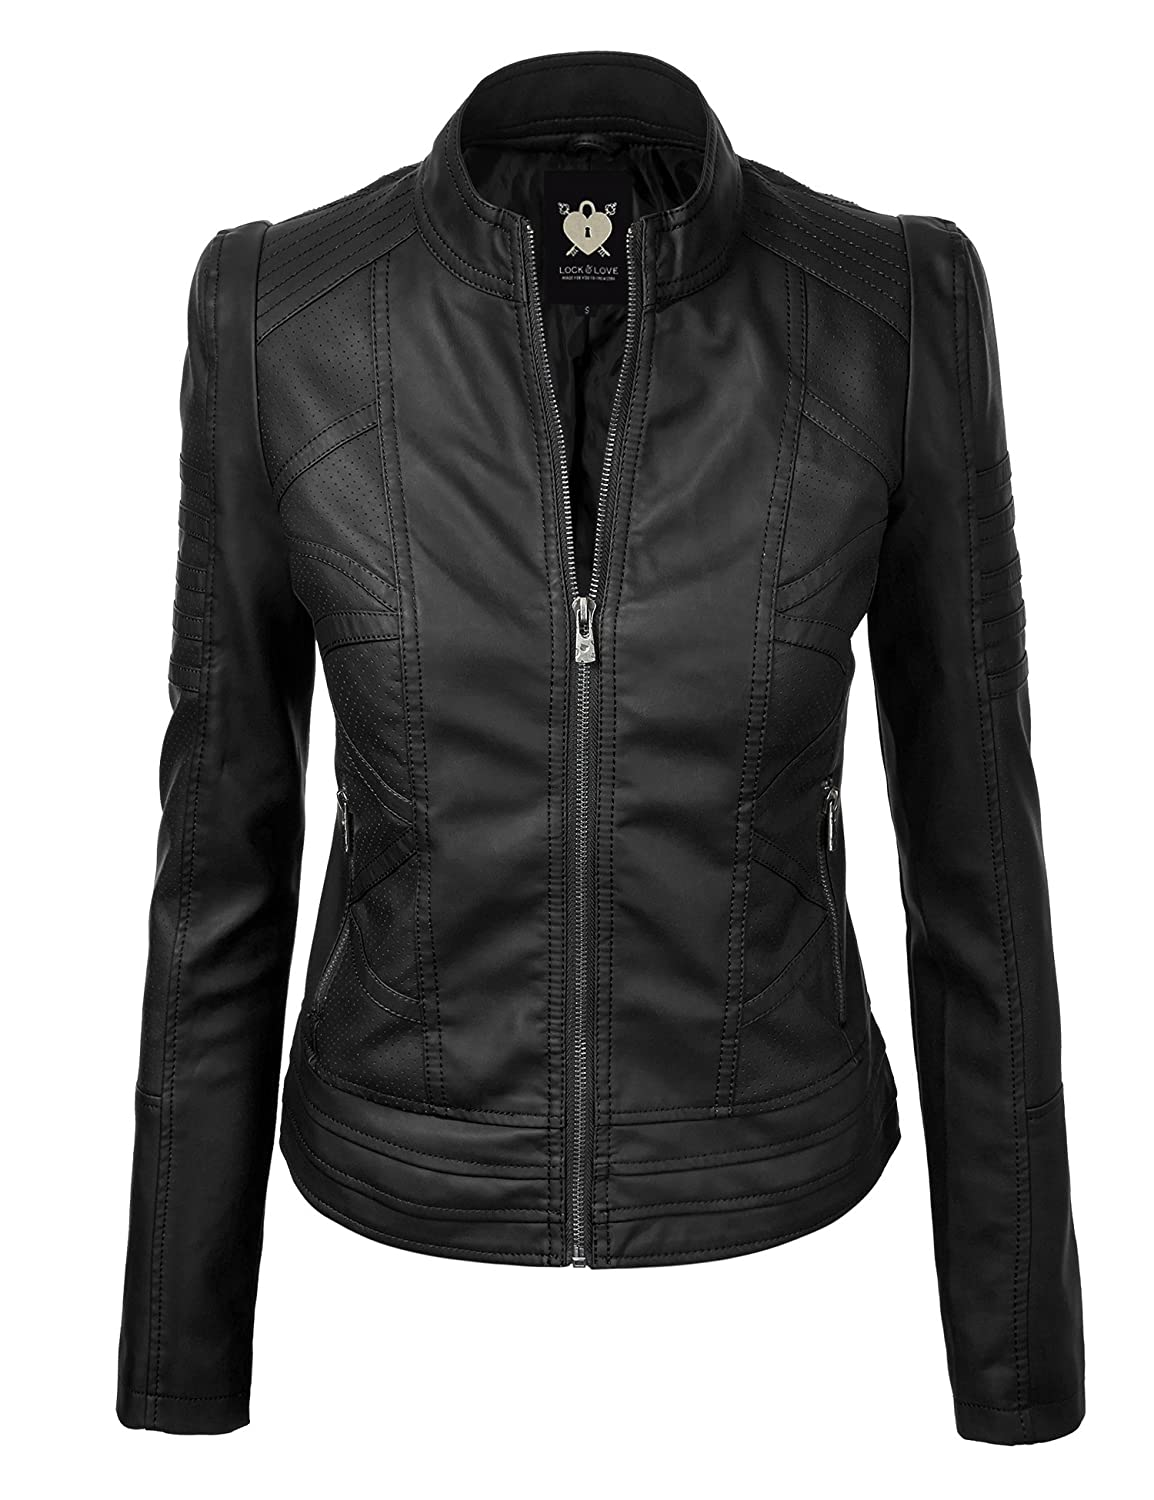 Fashion week Wear you Trendswould a quilted biker jacket for woman